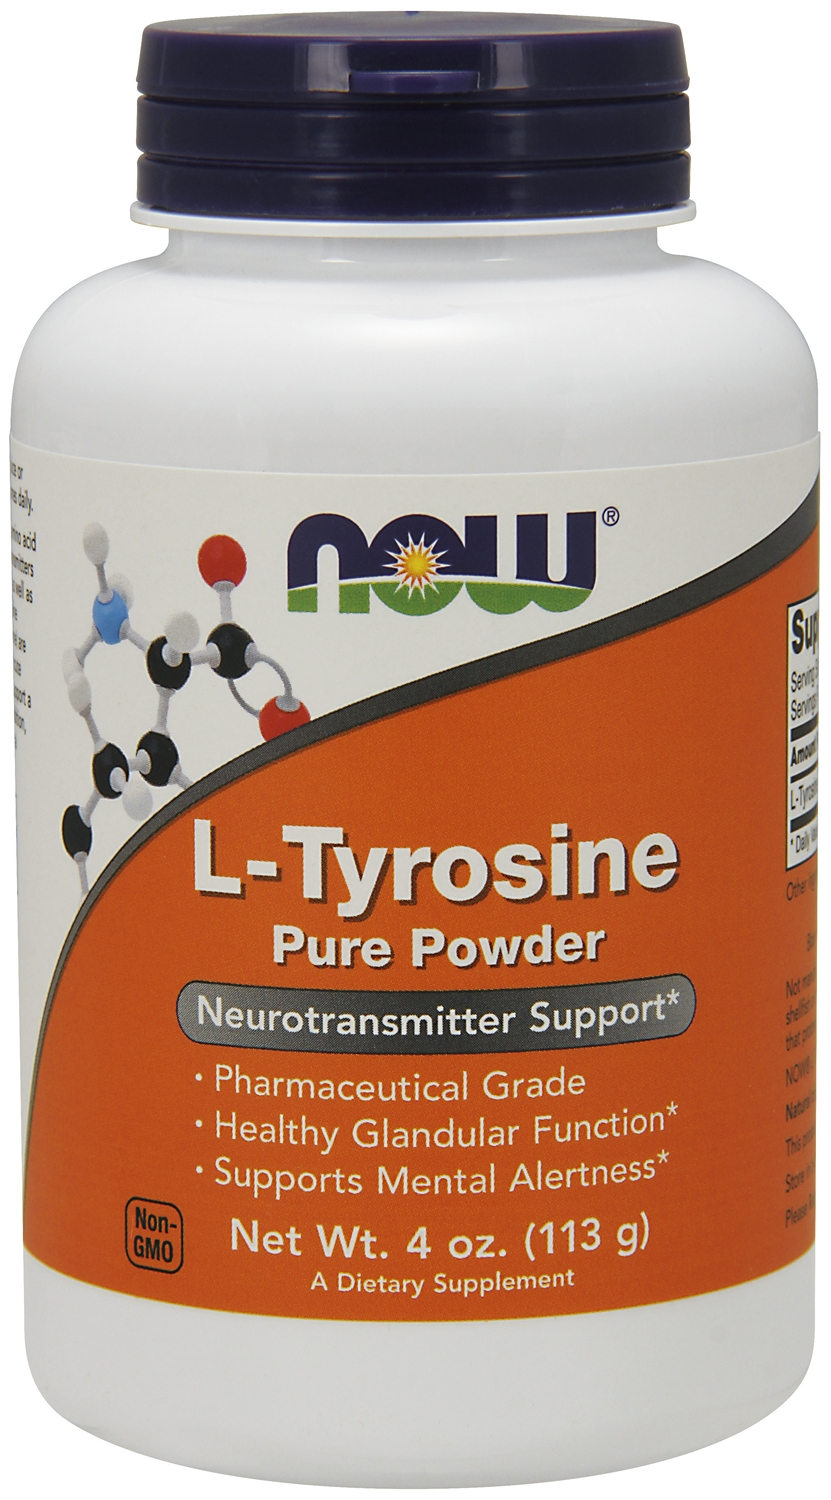 L-Tyrosine 100% Pure Powder 4 oz (113 g) by NOW